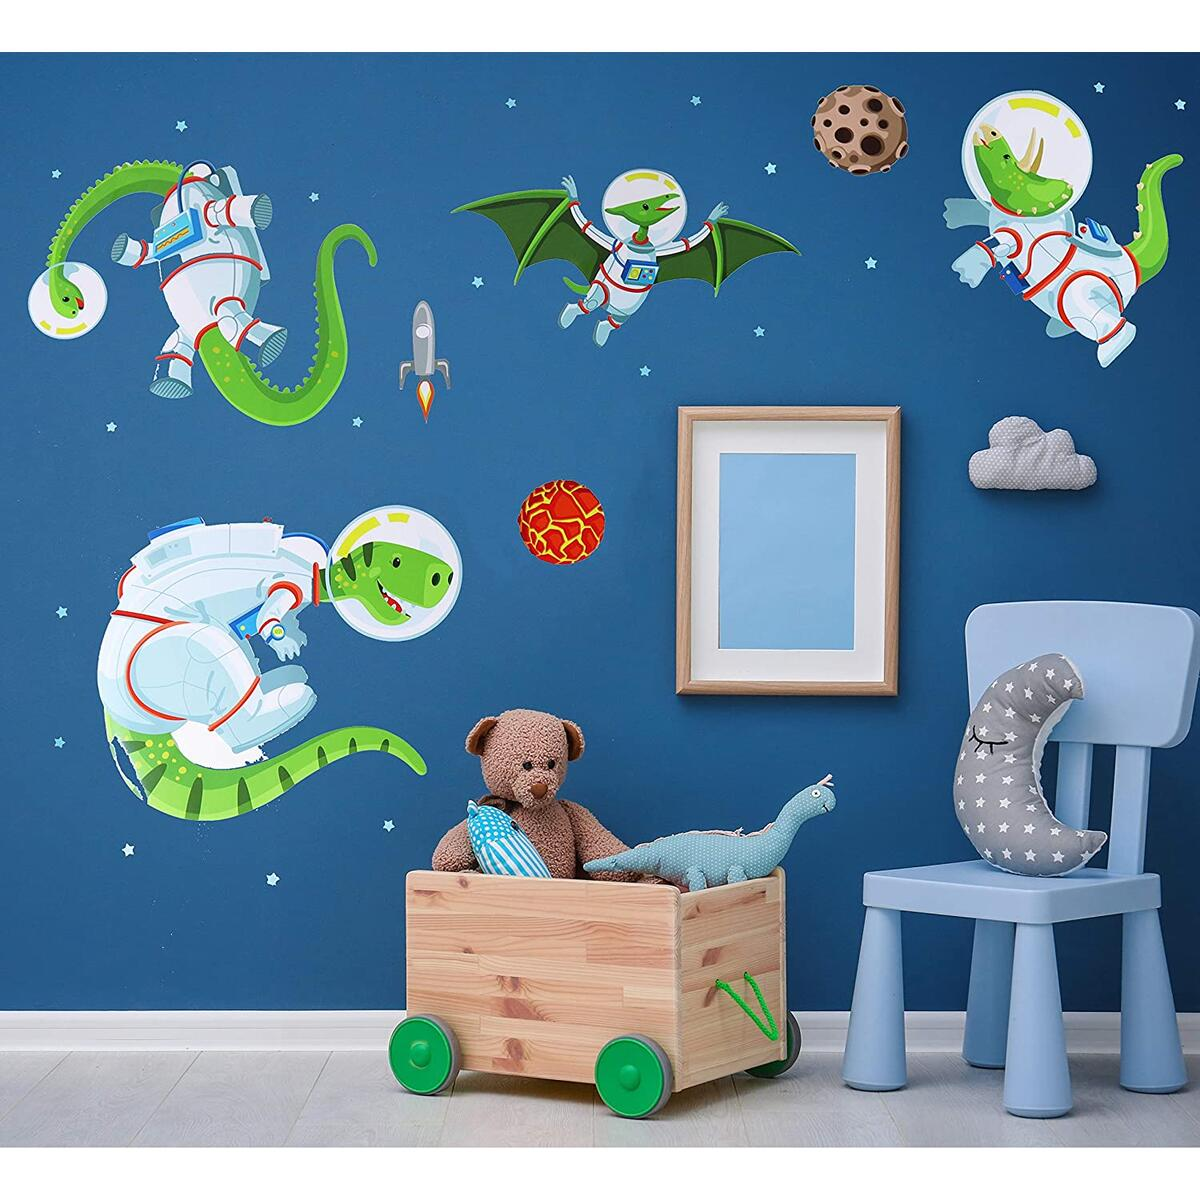 Dinosaur Astronaut Space Adventure Wall Decal Set for Kids